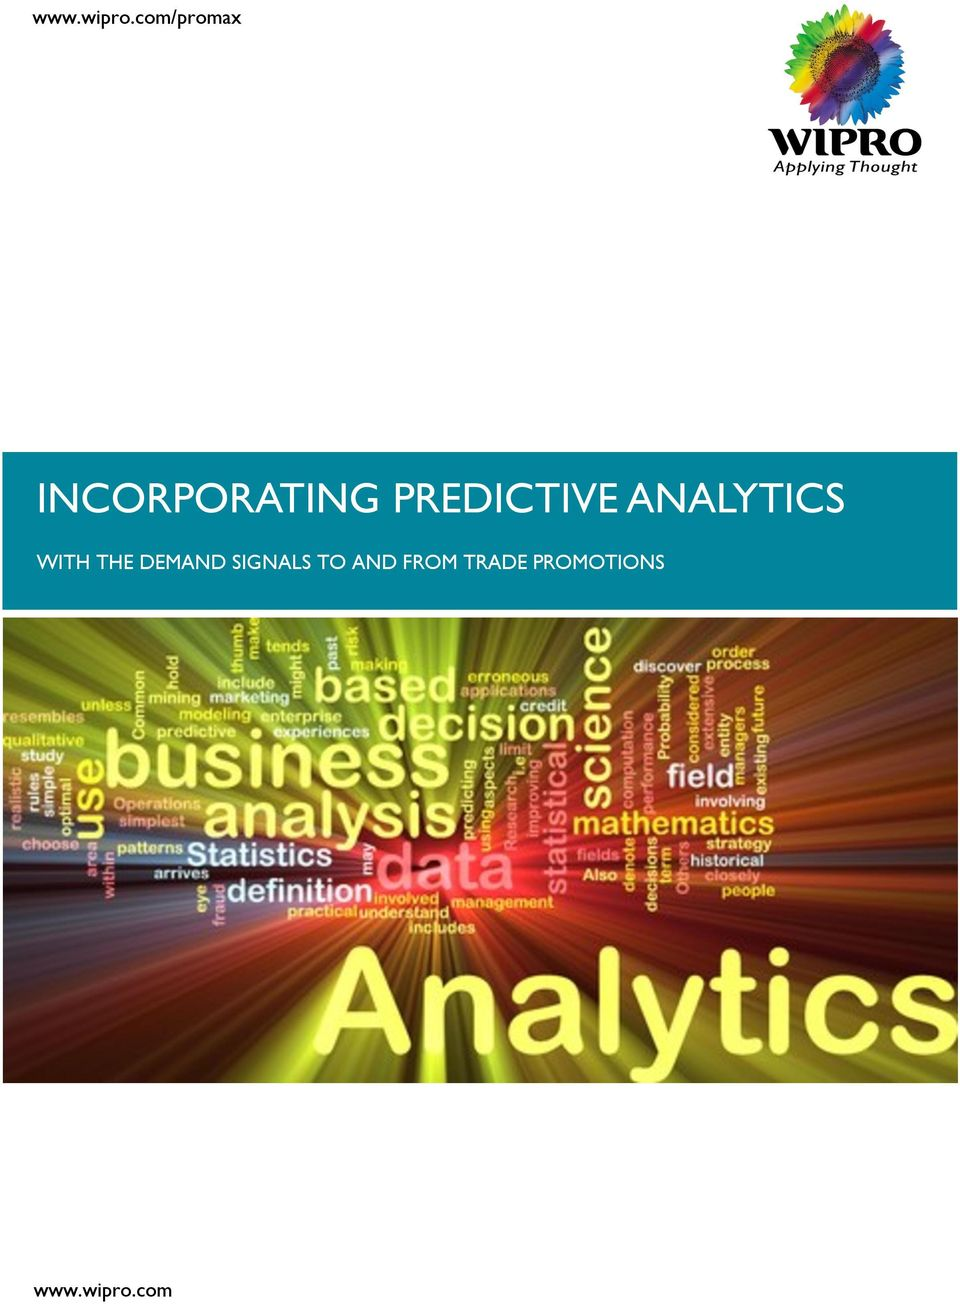 PREDICTIVE ANALYTICS WITH THE